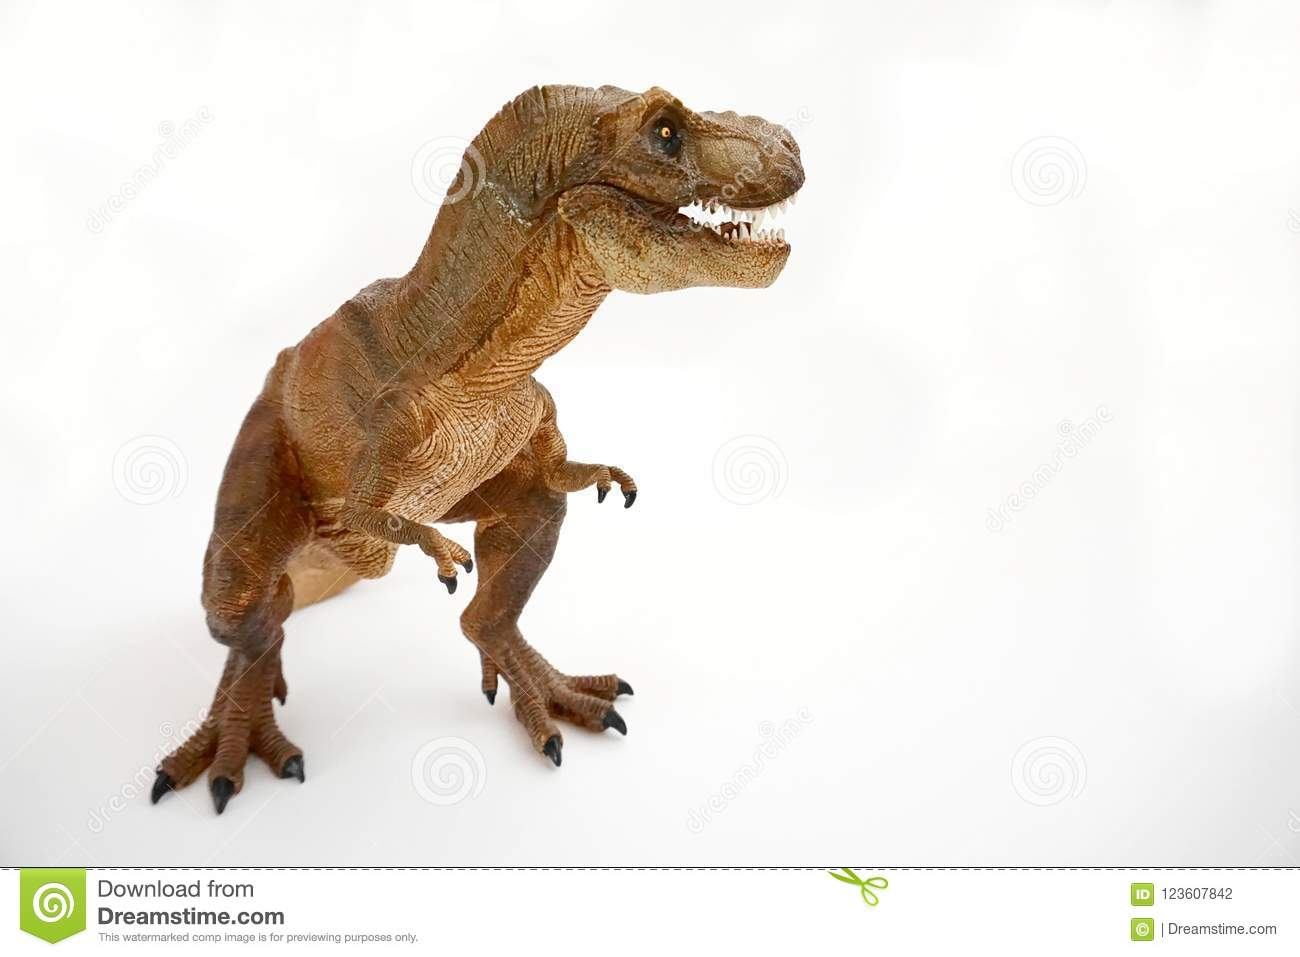 Brown tyrannosaurus rex t-rex, coelurosaurian theropod dinosaur didactic figure with open mouth